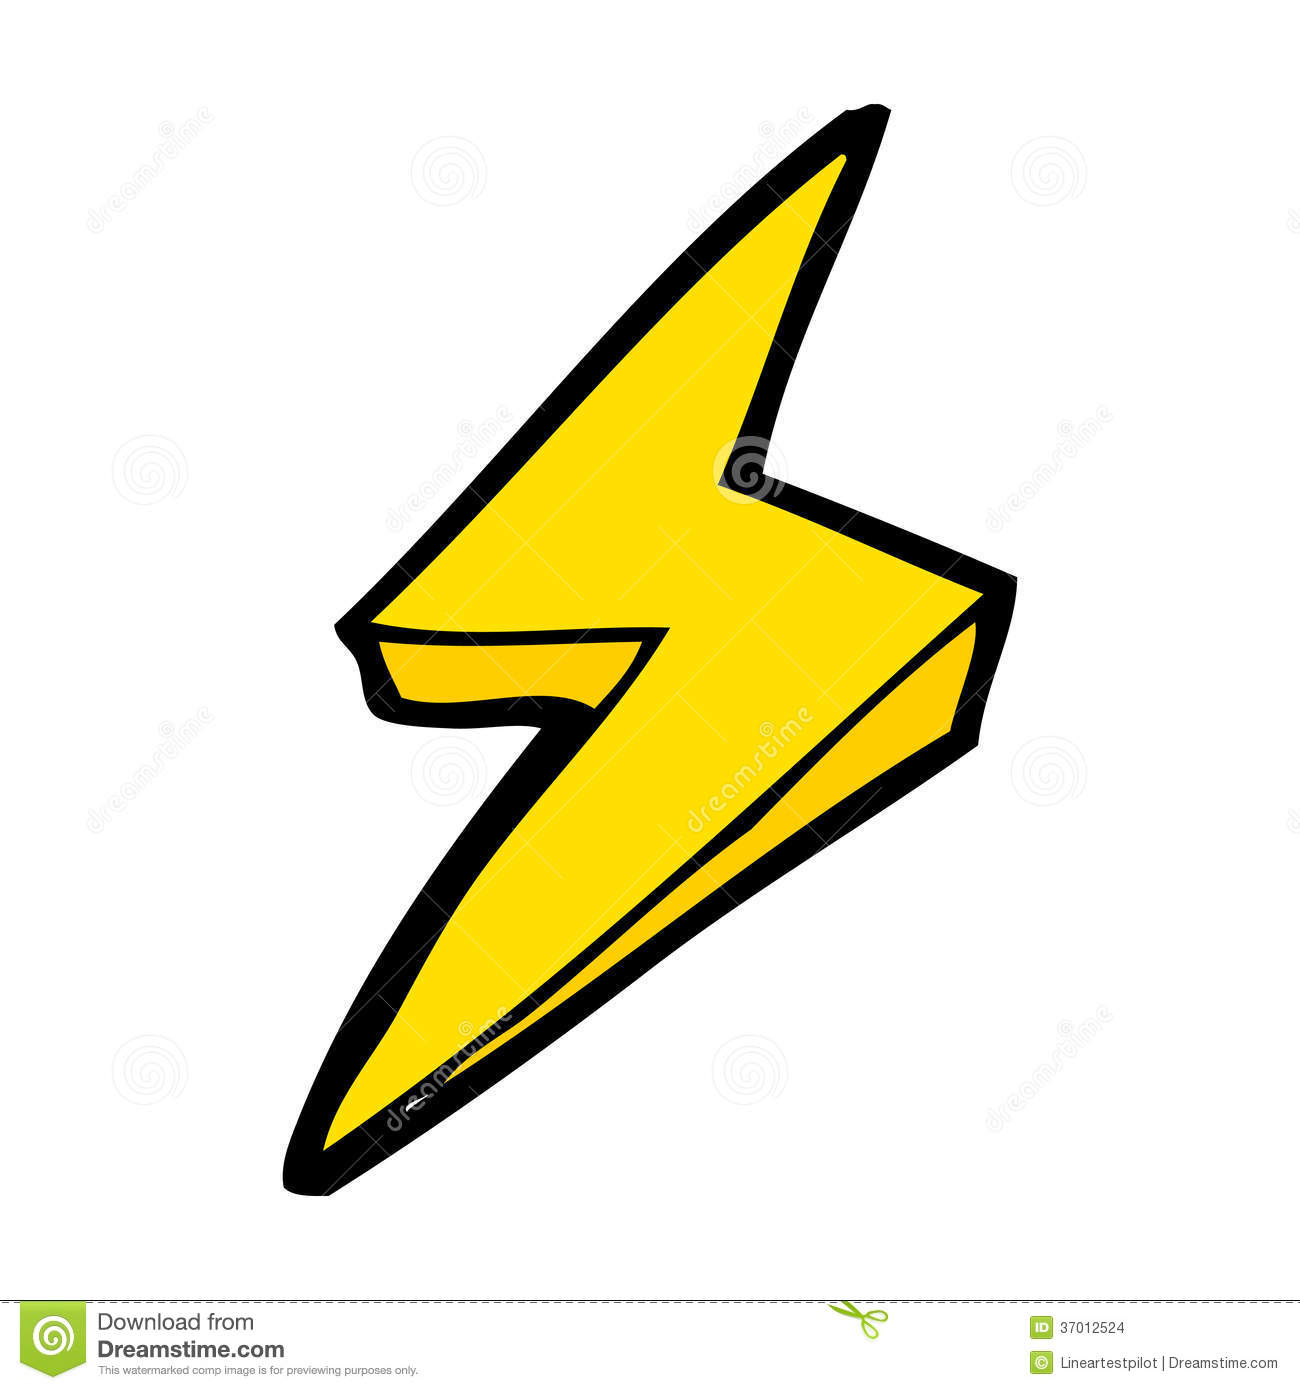 Cartoon Lightning Bolt Symbol Stock Vector - Illustration of ... for Vector Lighting Bolt  55dqh